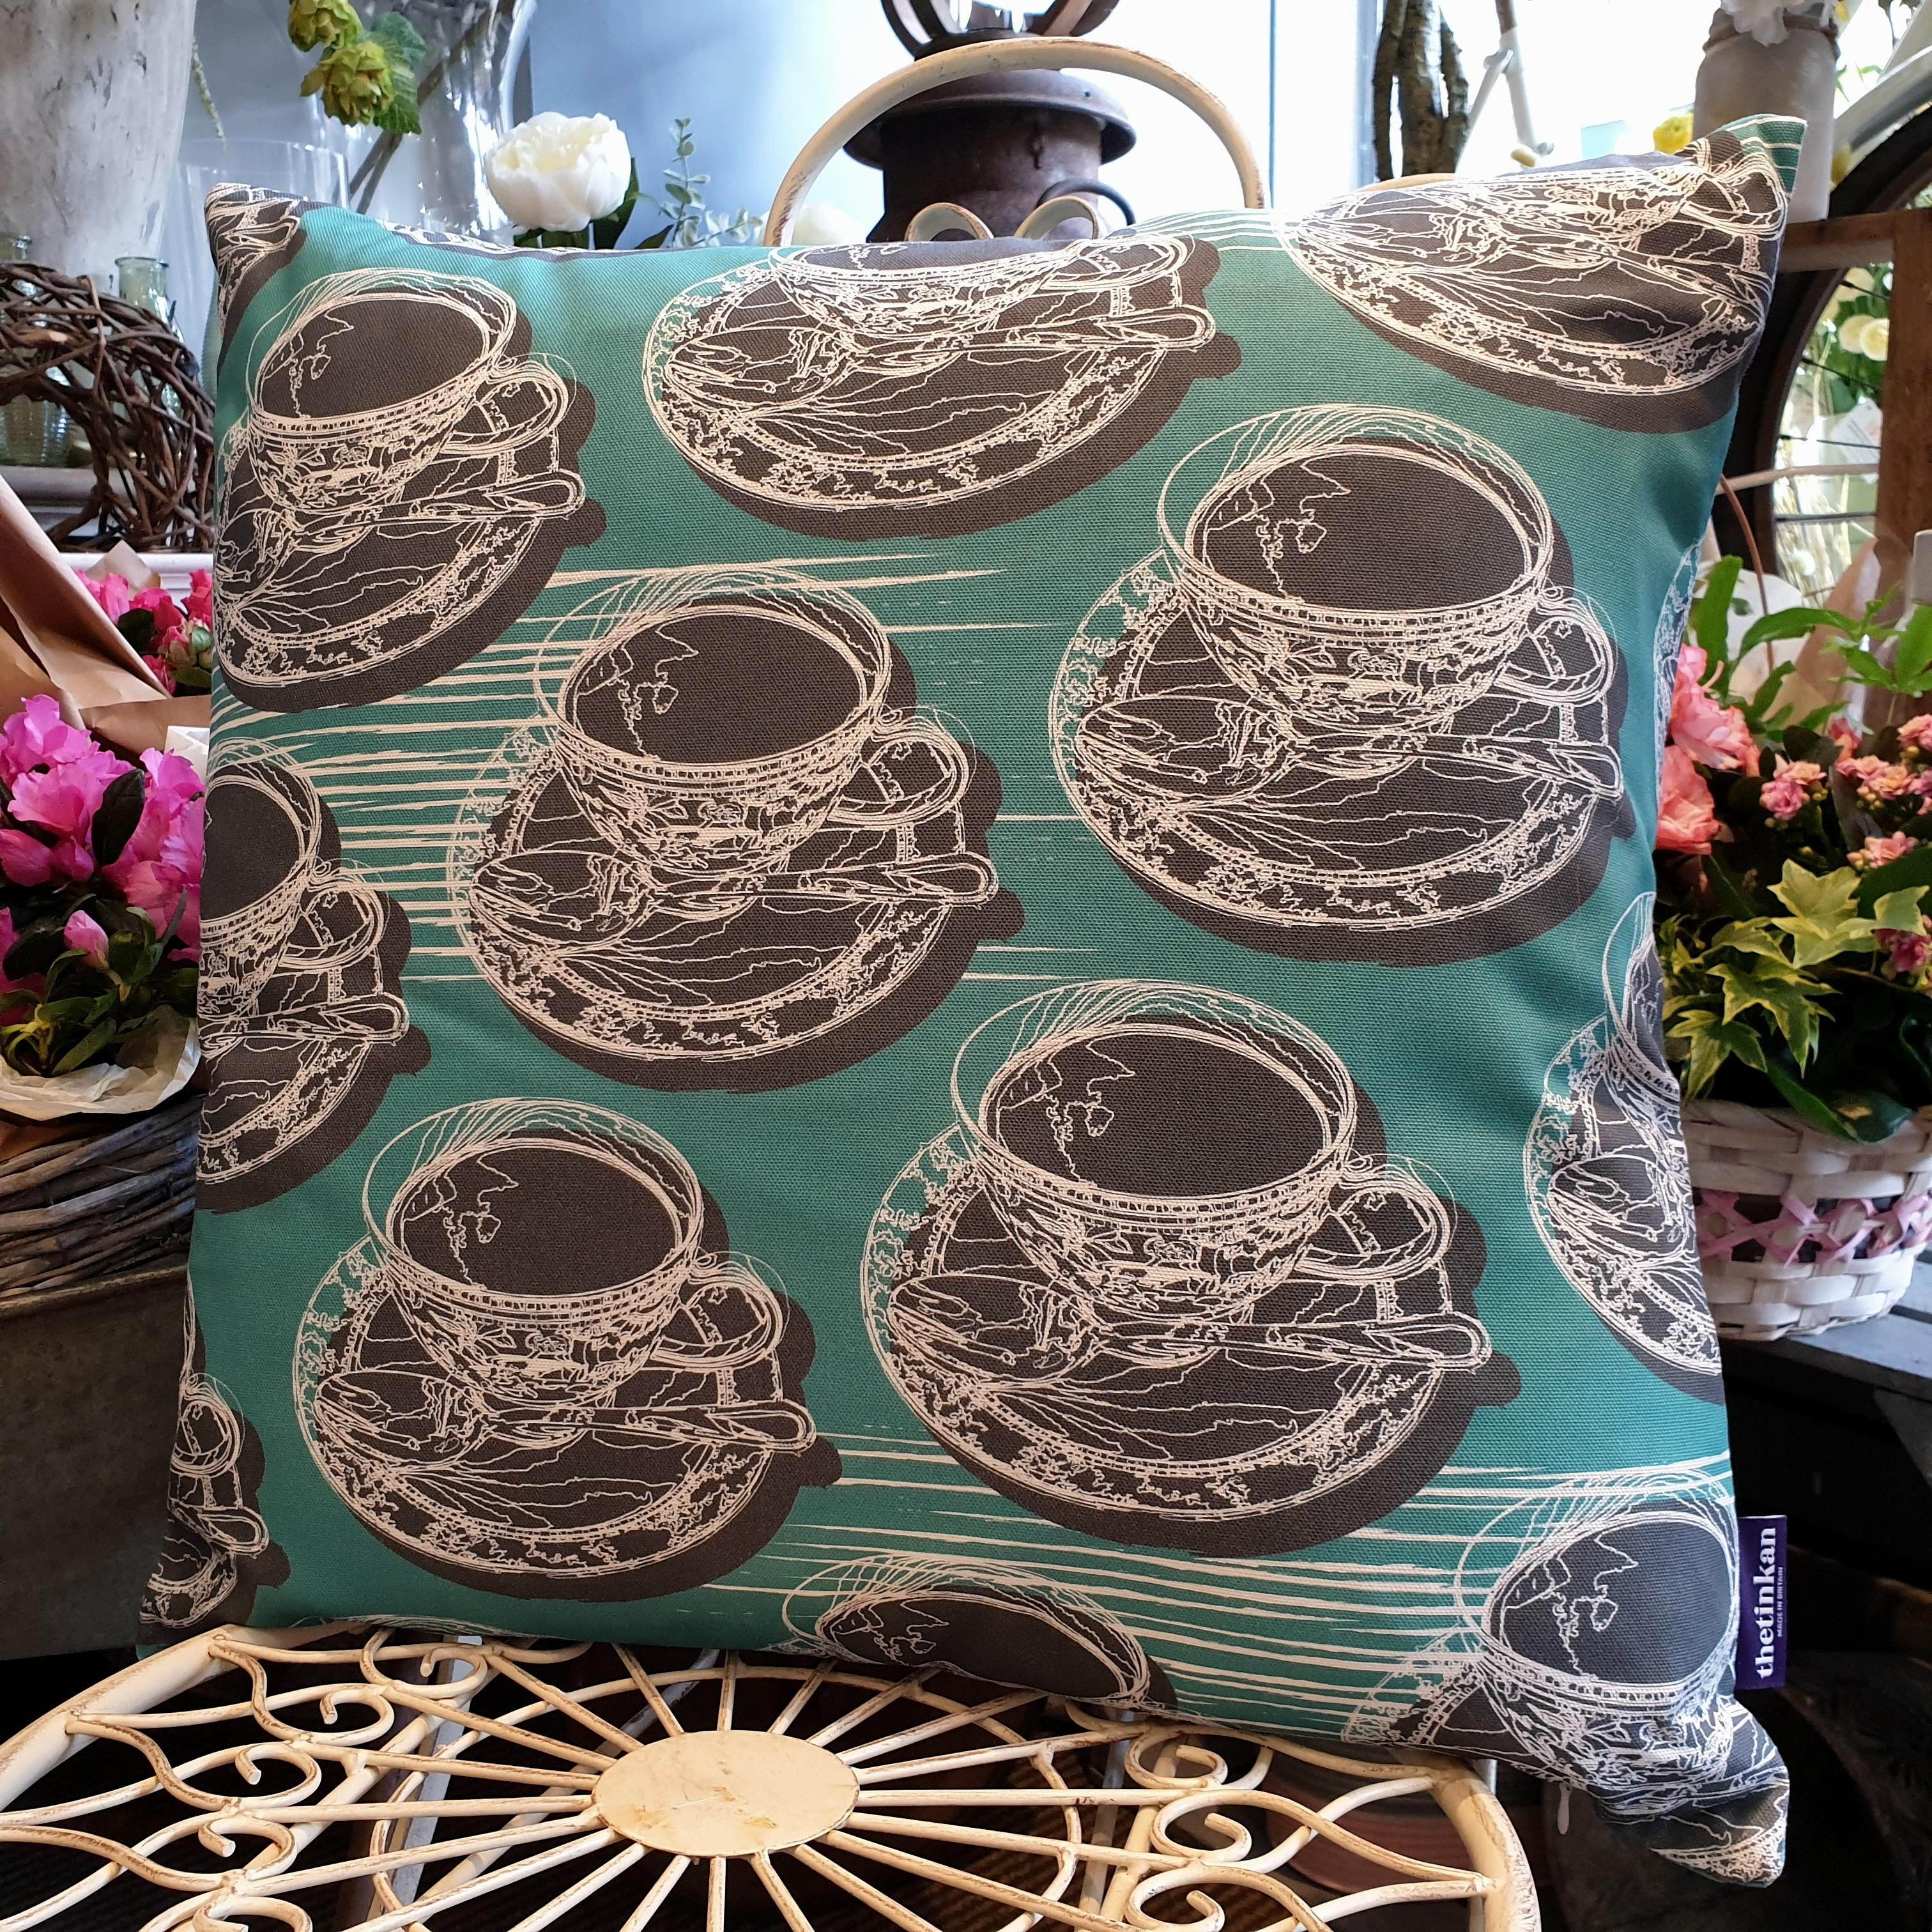 Double-sided aqua teal 51cm square retro Afternoon Tea cushion with artistic white shards designed by thetinkan. White traced outline of multiple British teacups and saucers each colour filled in charcoal grey. Available with an optional luxury cushion inner pad. VIEW PRODUCT >>